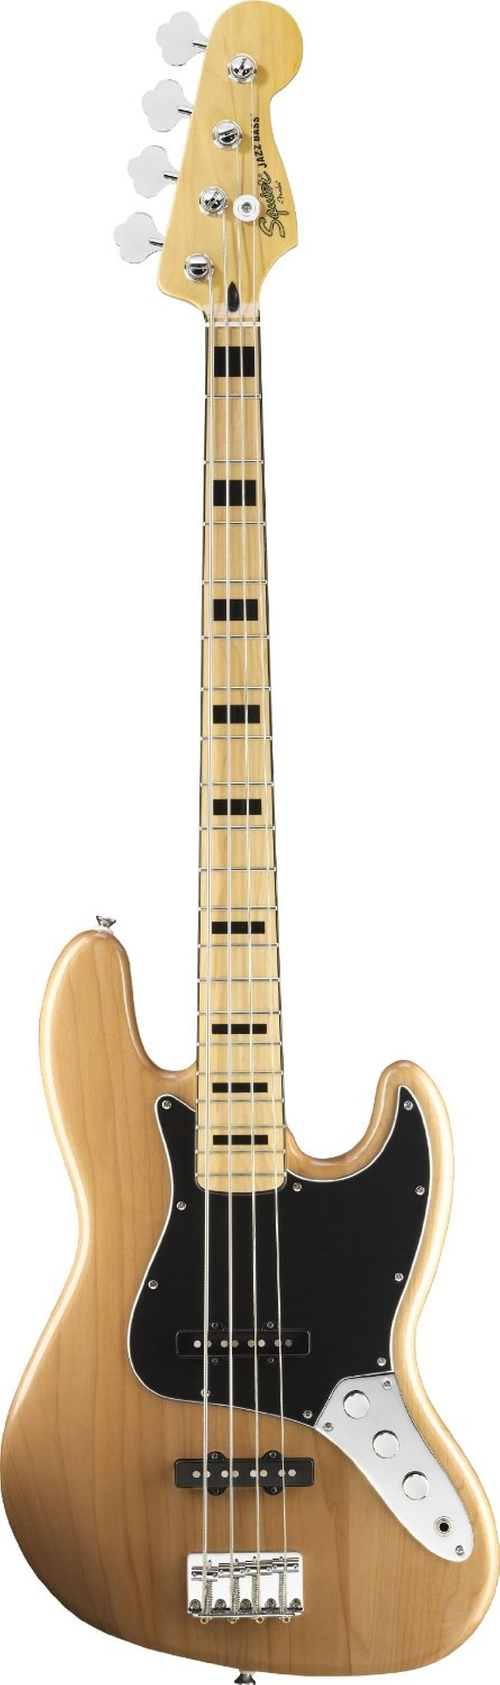 Squier by Fender Vintage Modified Jazz Bass '70s, Natural by Fender in Jersey Boys